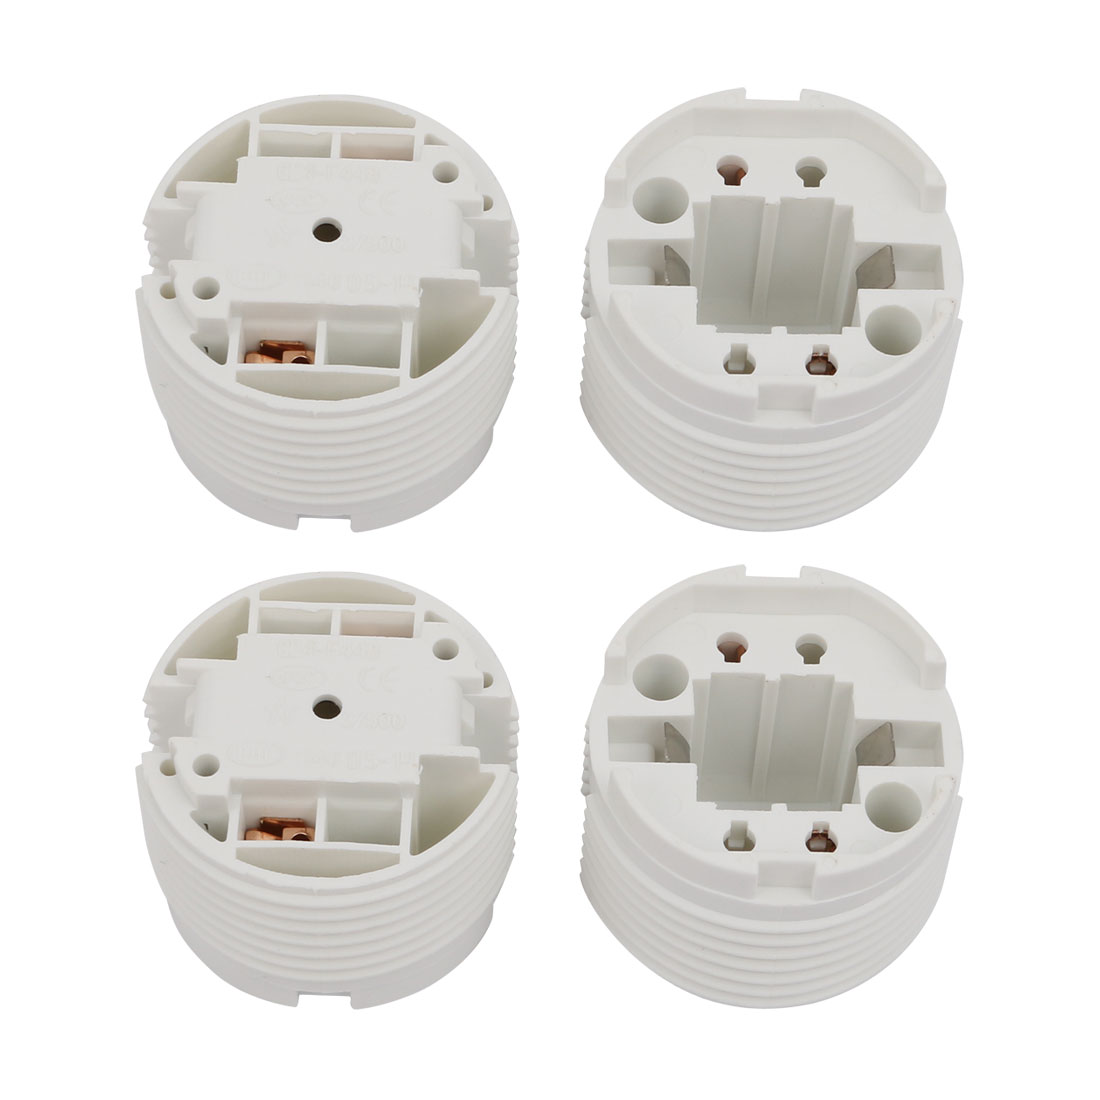 4 Pcs F448D AC 500V 2A G24 Base H Light Socket Fluorescent Tube Lamp Holder